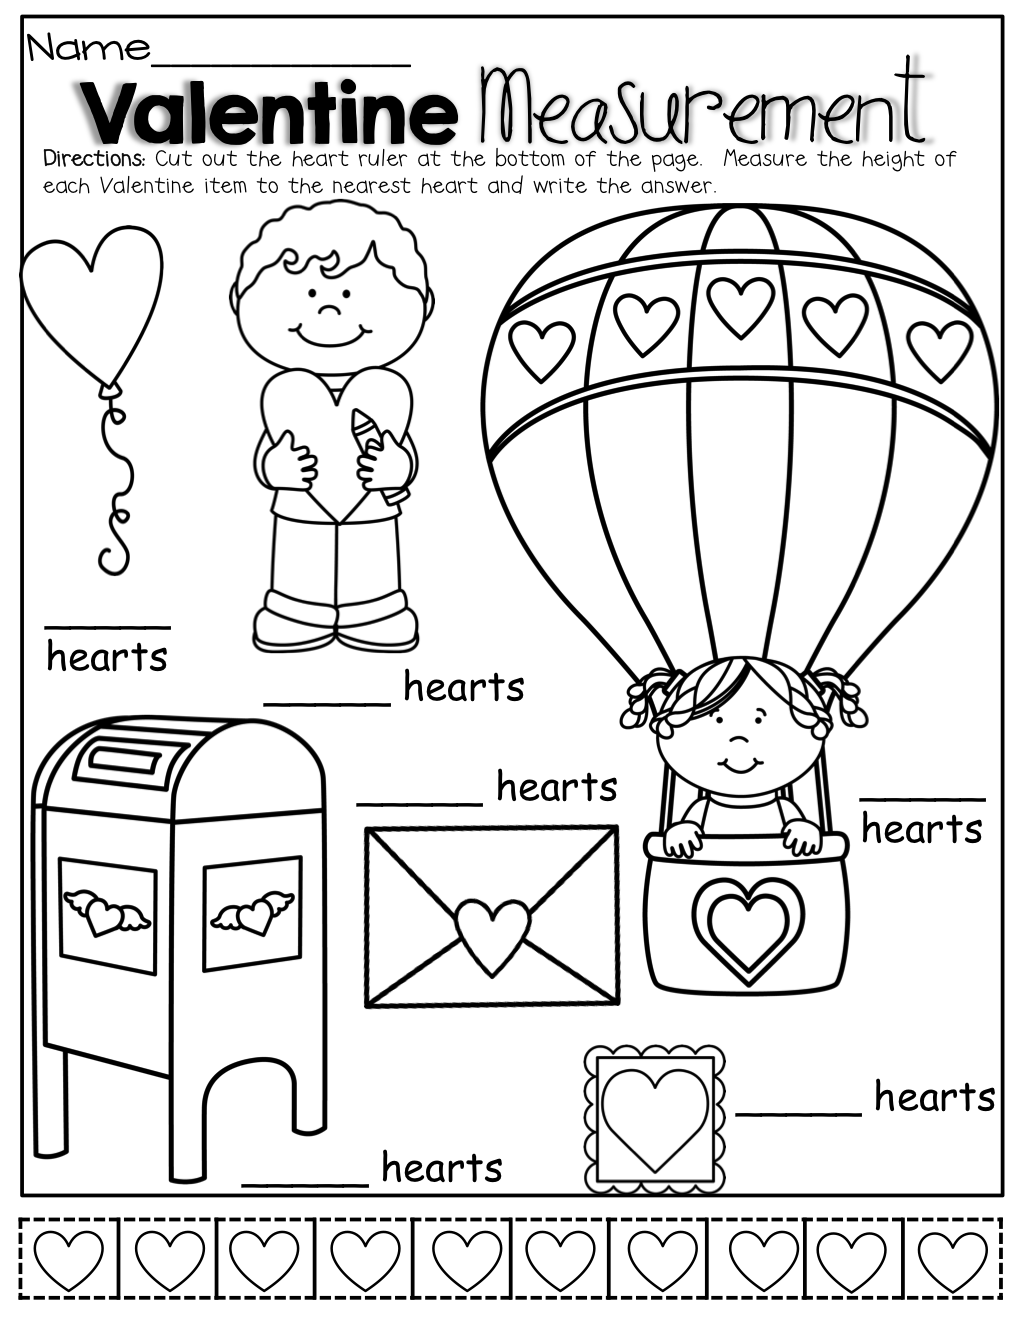 Valentine Non-Standard Measurement! | Kindergarten ideas | Pinterest ...